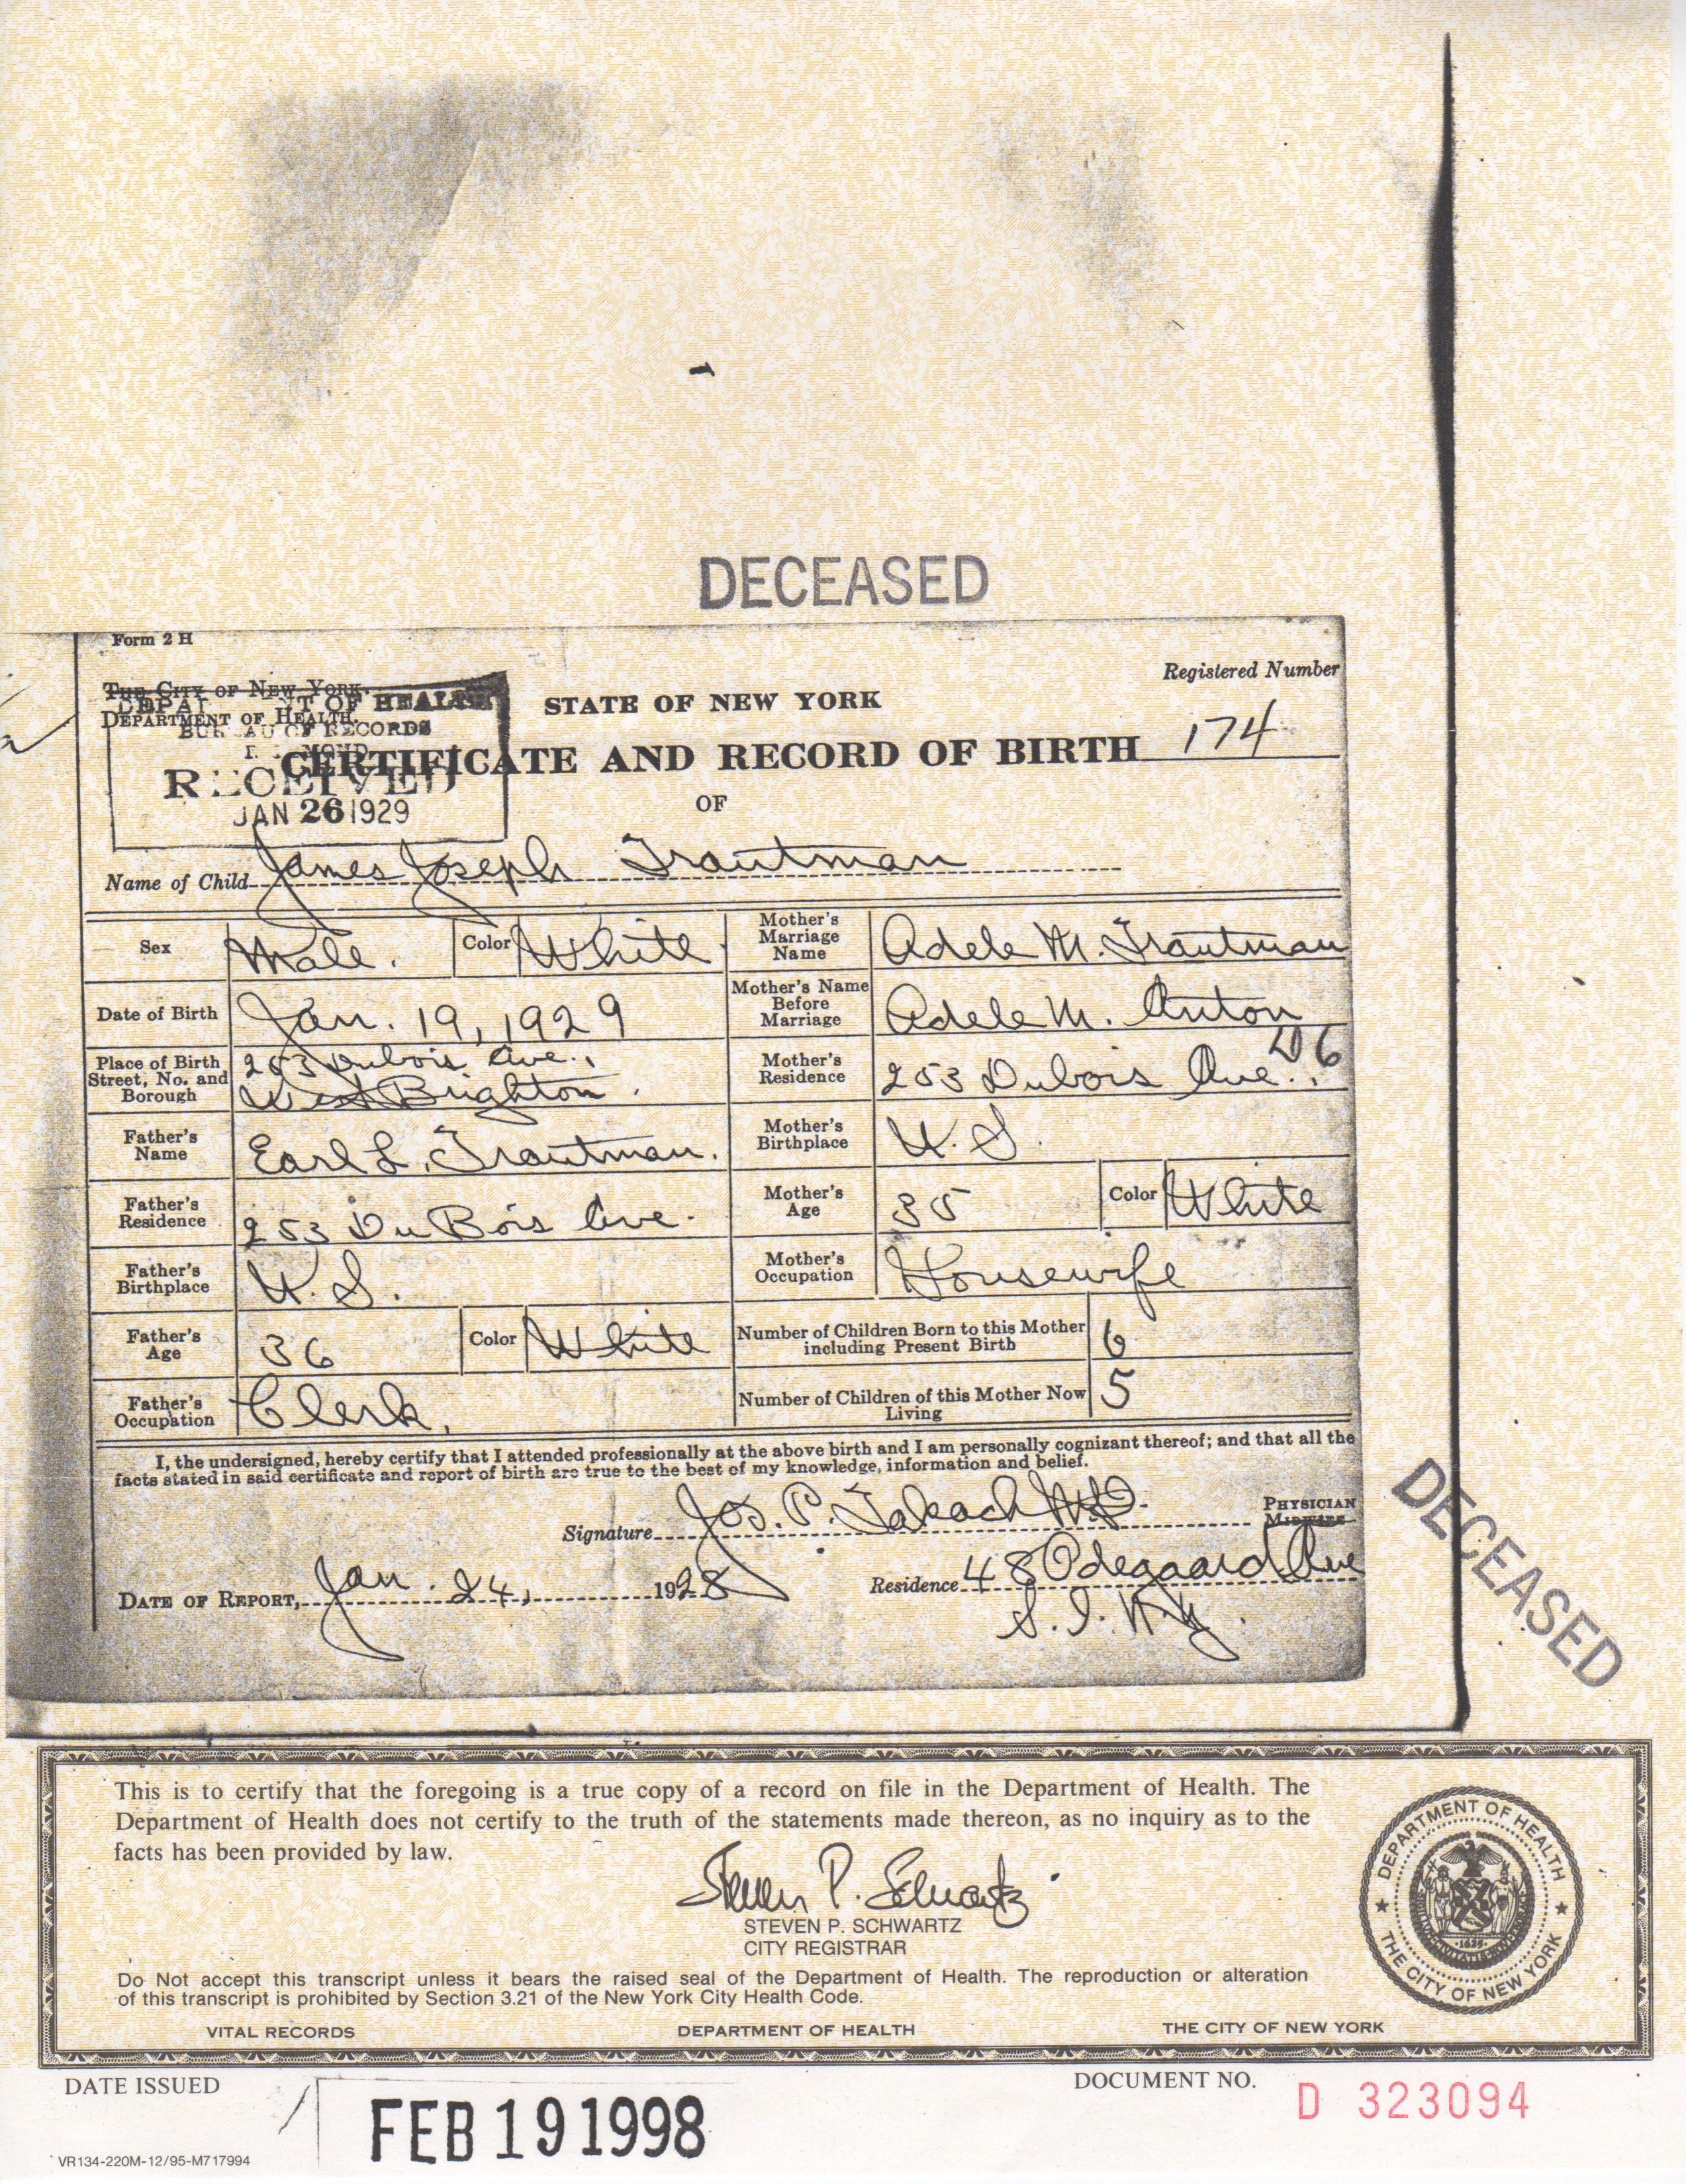 Mary cotter marion ann renfro and adele marie anton james joseph trautman birth certificate 1929 aiddatafo Images